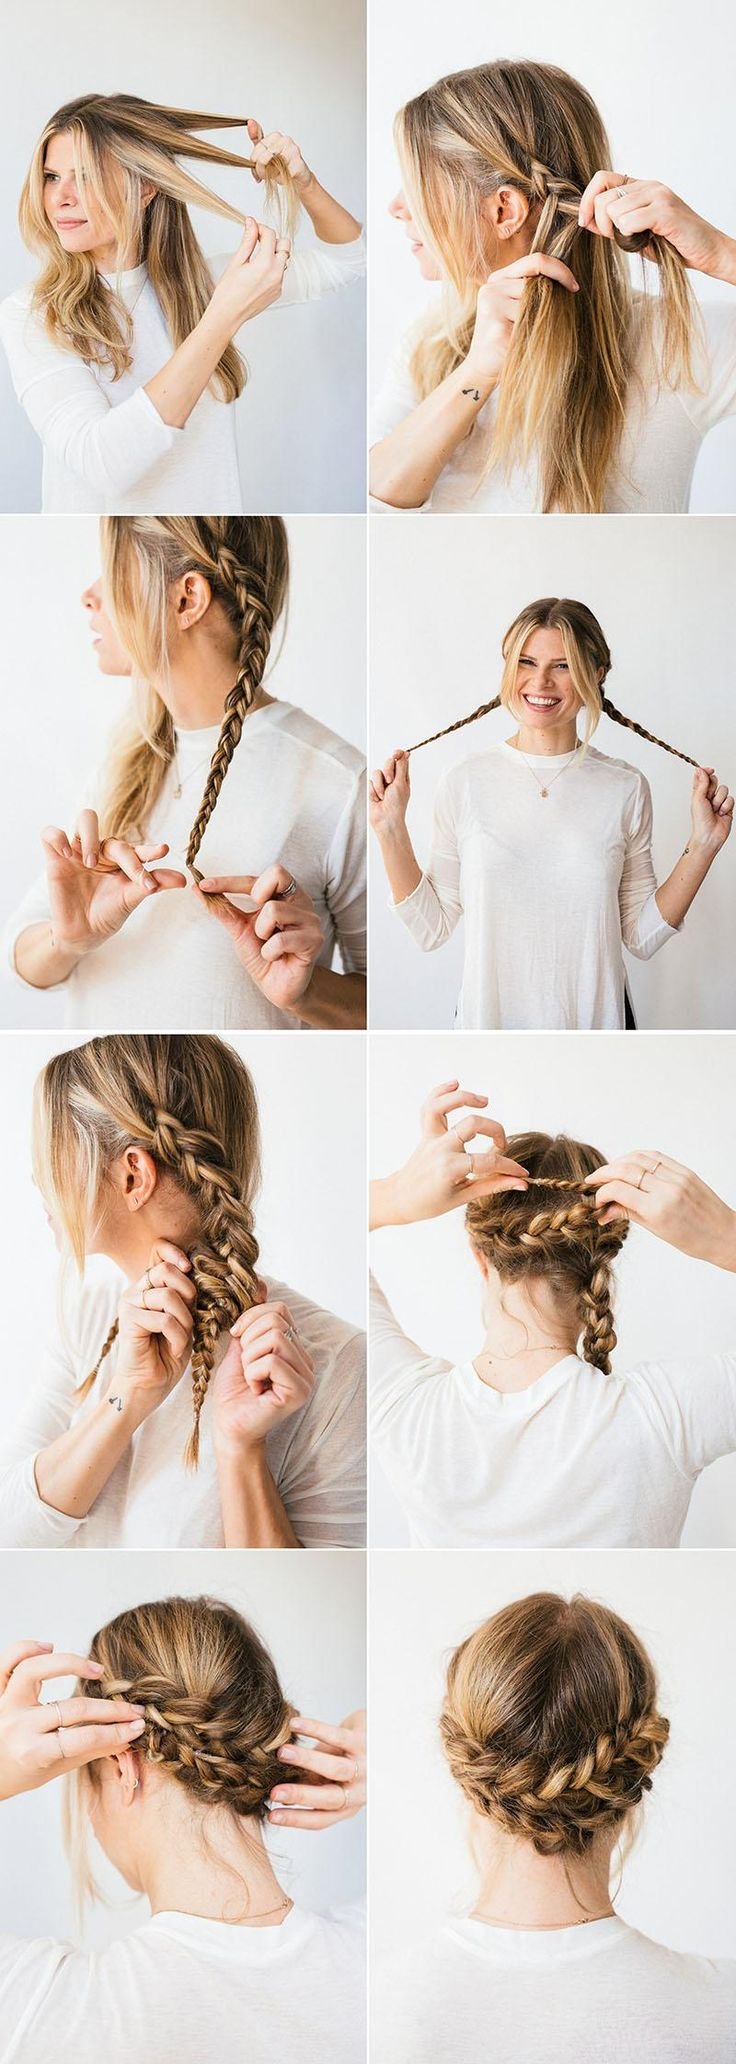 Pulled back but not a ponytail: meet your new favorite hairstyle, the horseshoe braid.